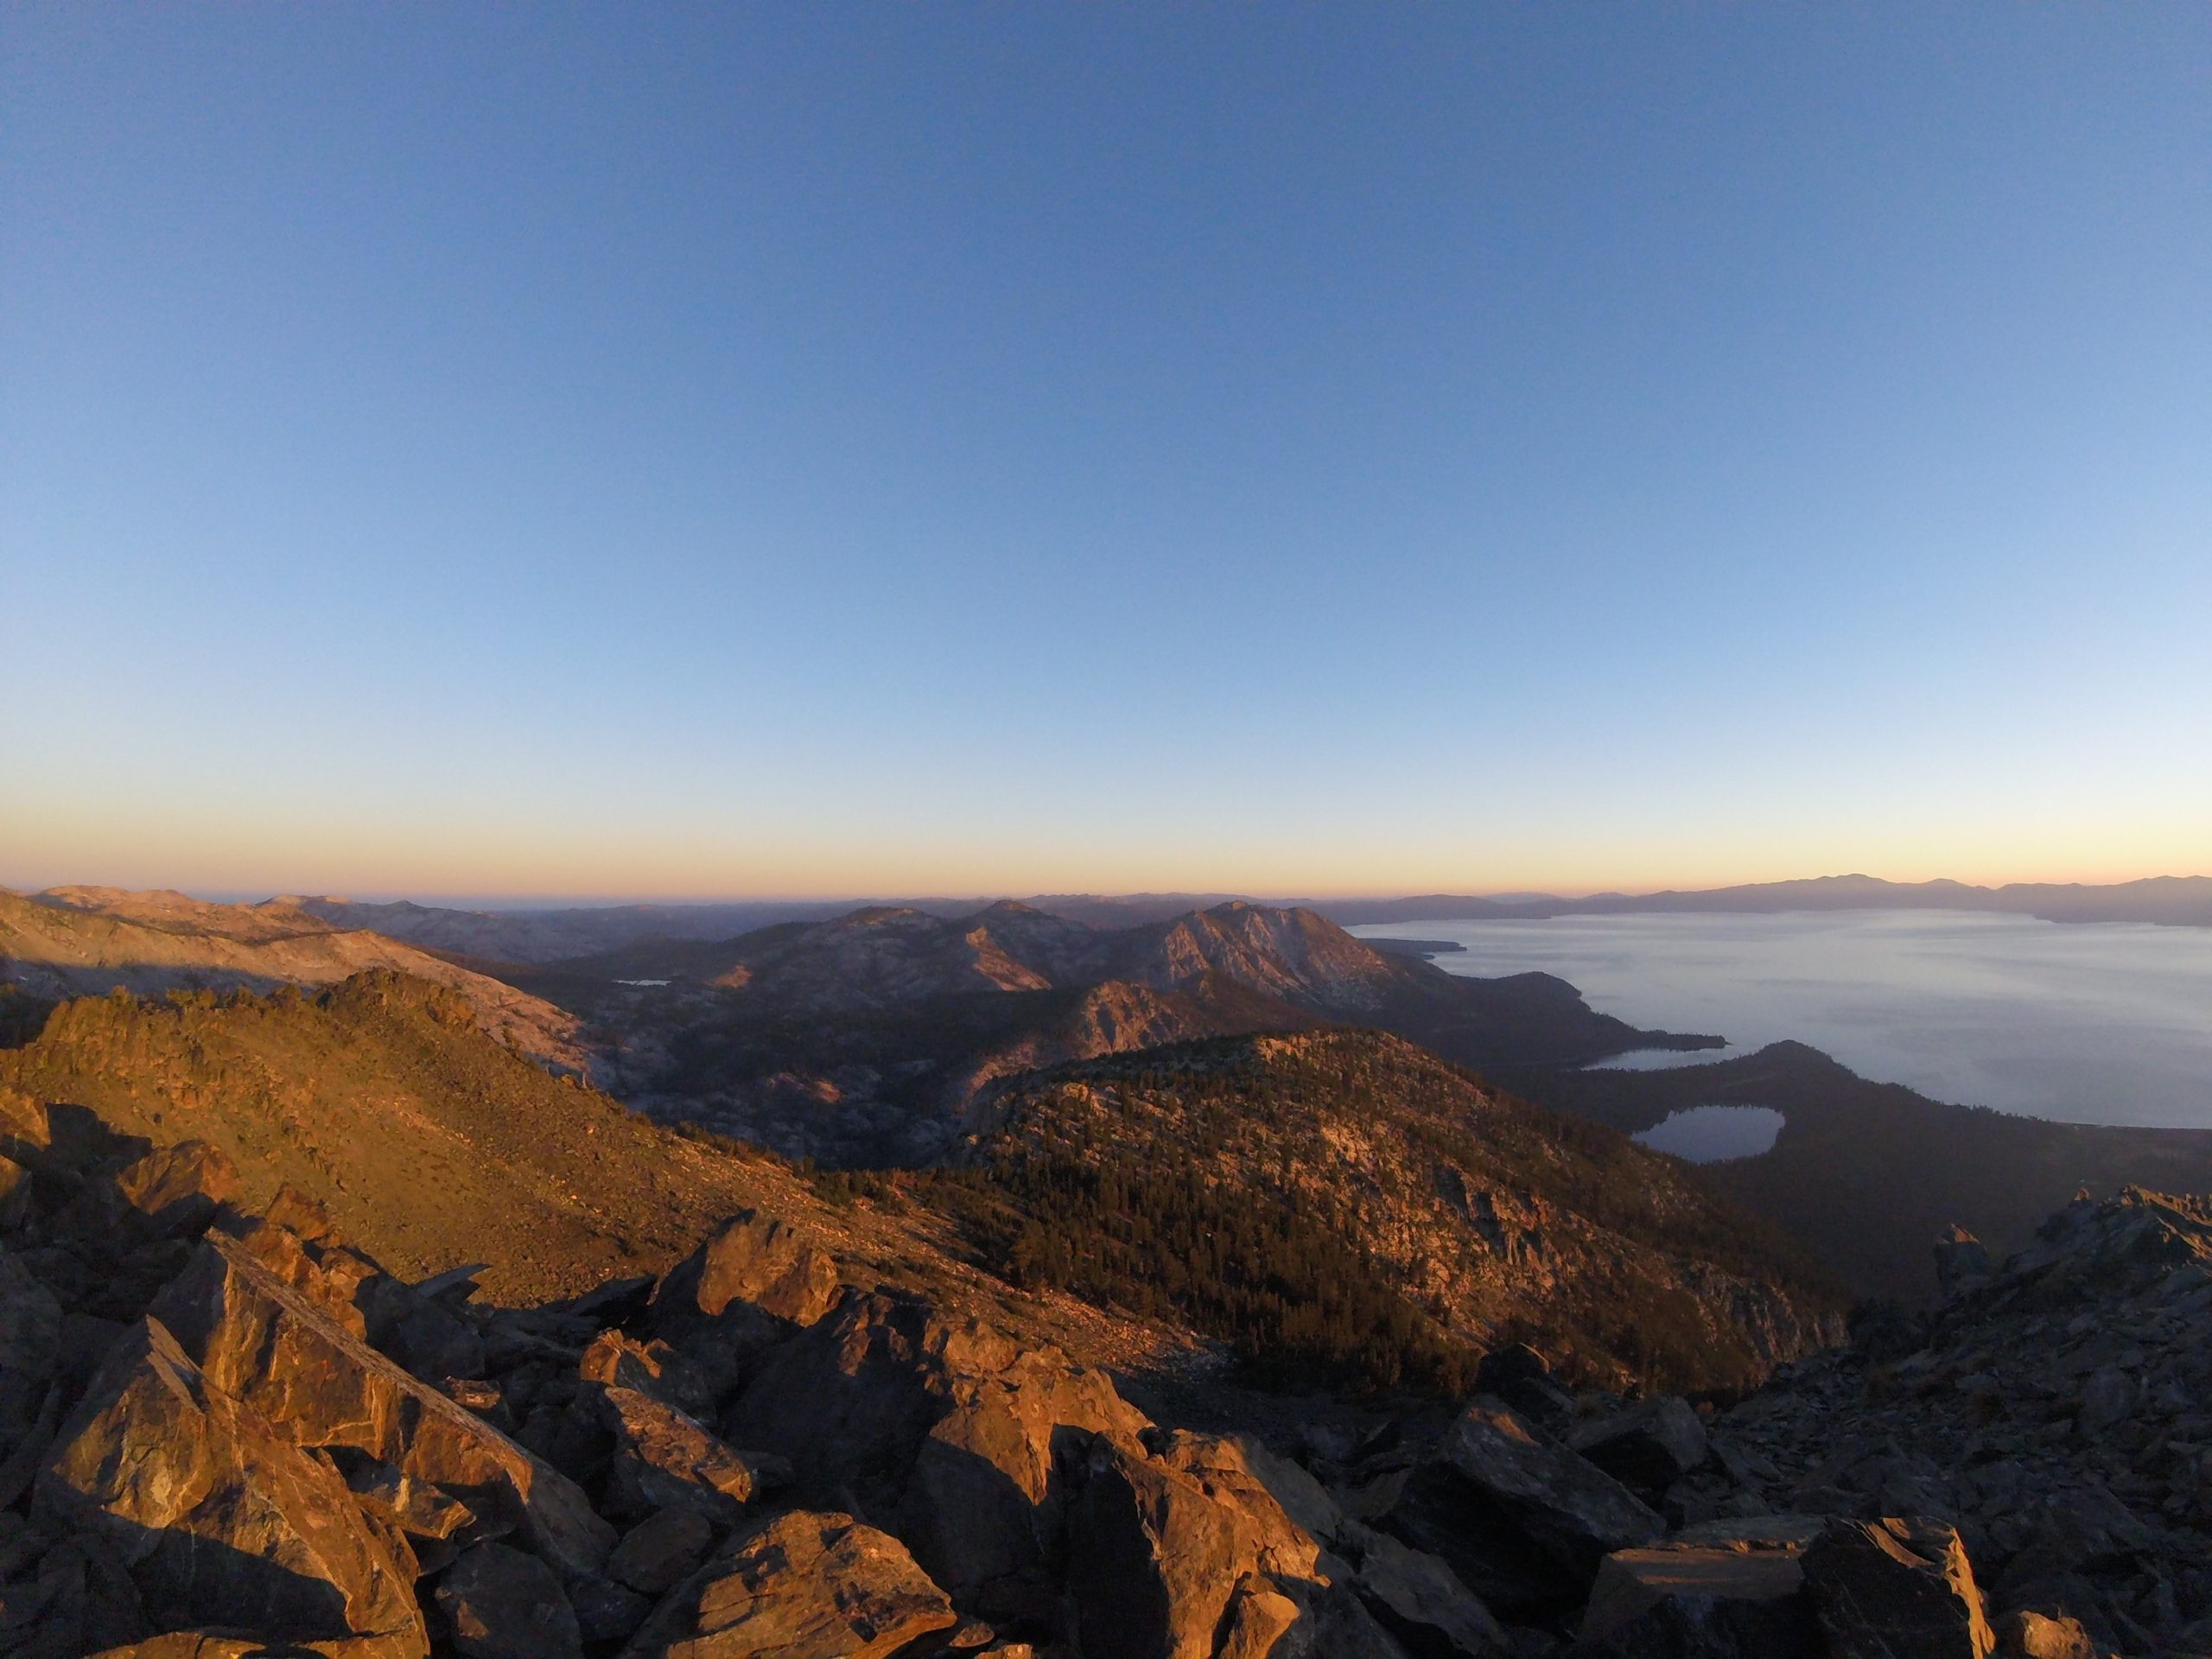 Best Local Day Hikes Around Tahoe - Looking North From Tallac Summit PC Tucker Ballister